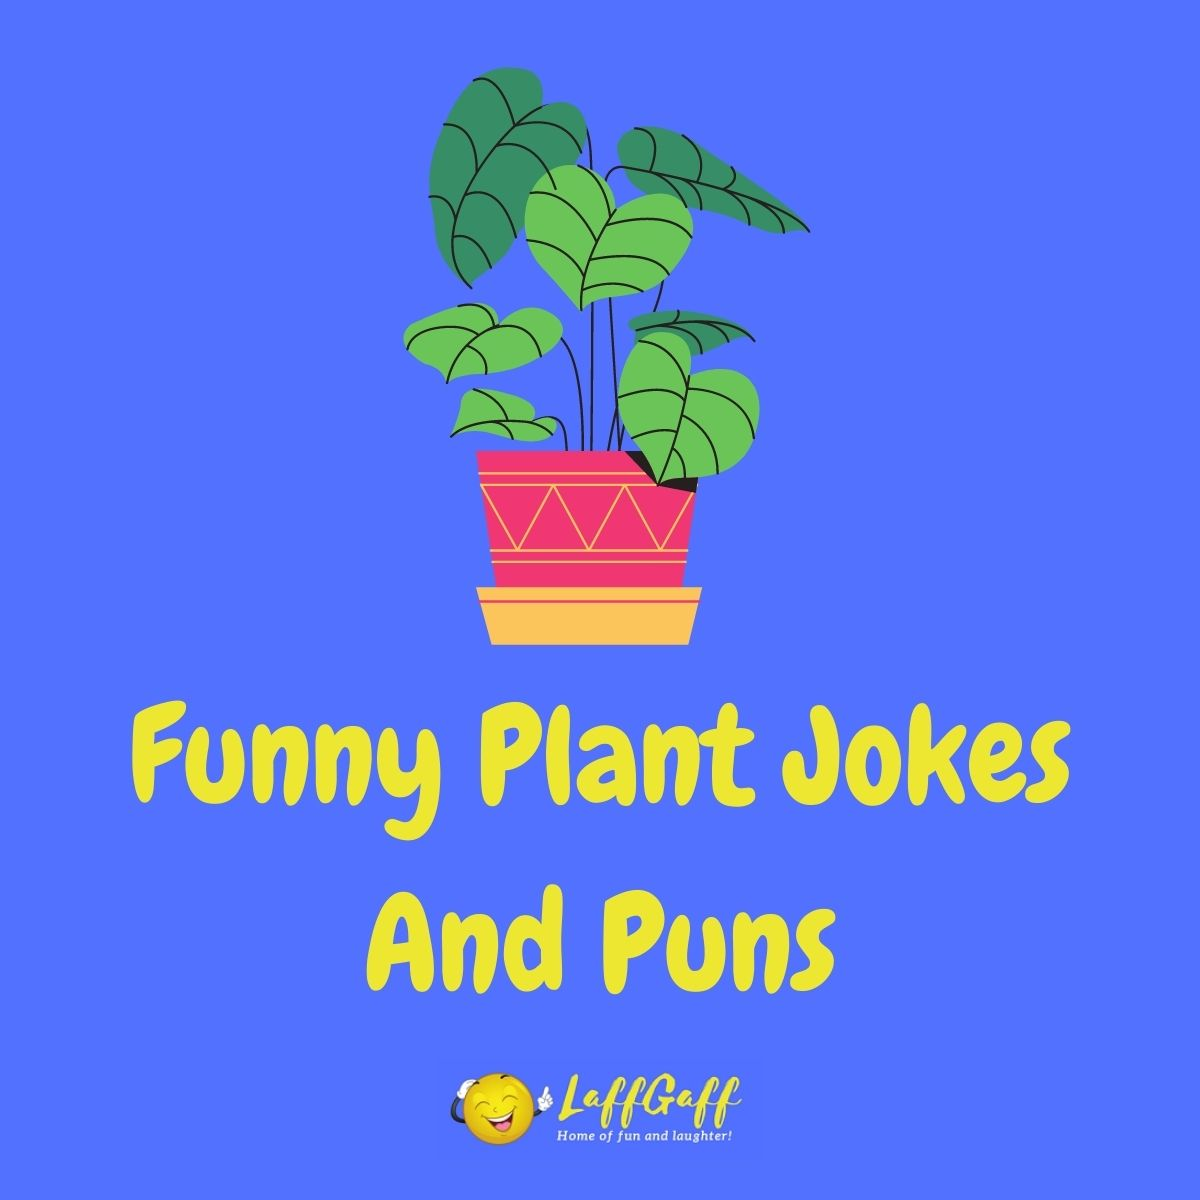 Featured image for a page of funny plant jokes and puns.